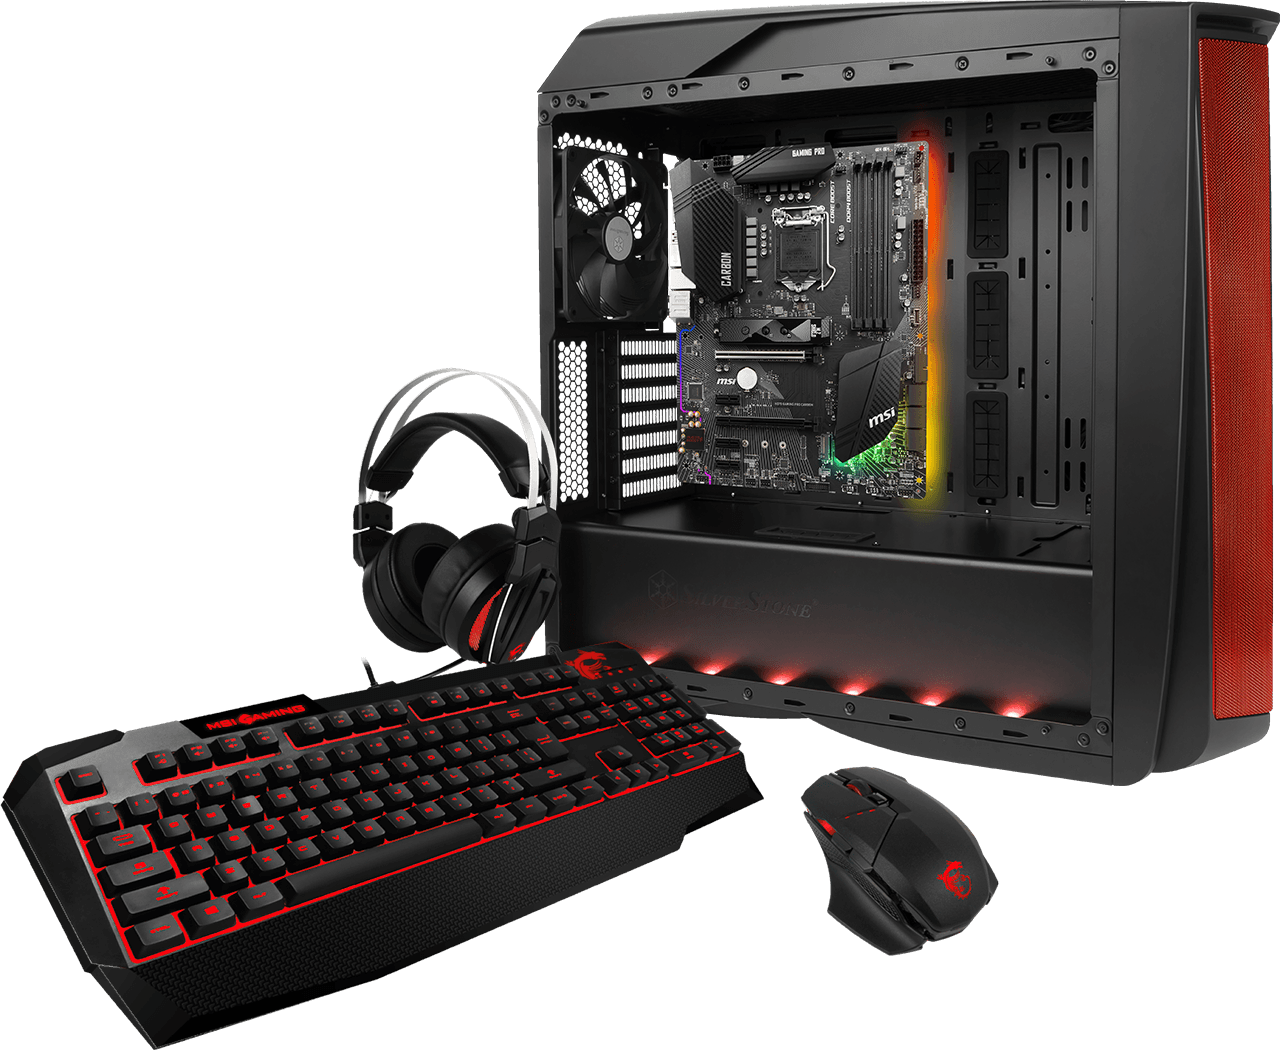 MSI H370 GAMING PRO CARBON Mystic Light